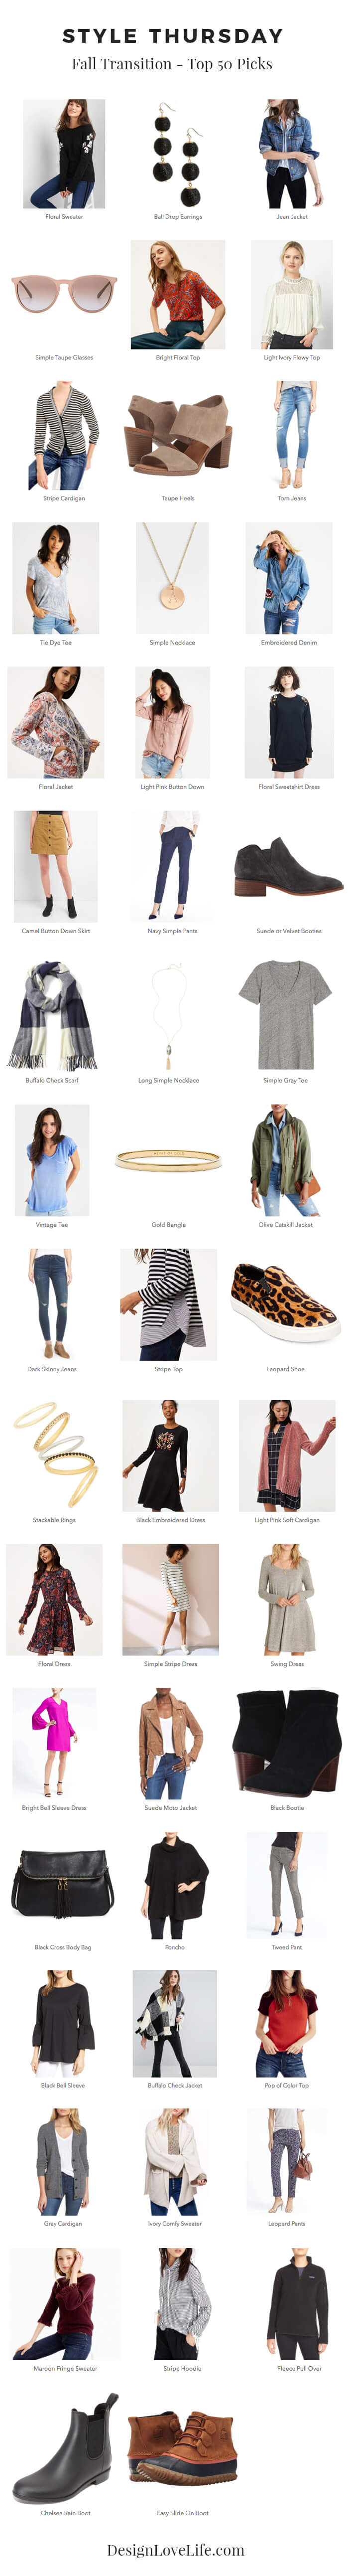 Style Thursday - Fall Transition Top 50 Pics Imagery Header